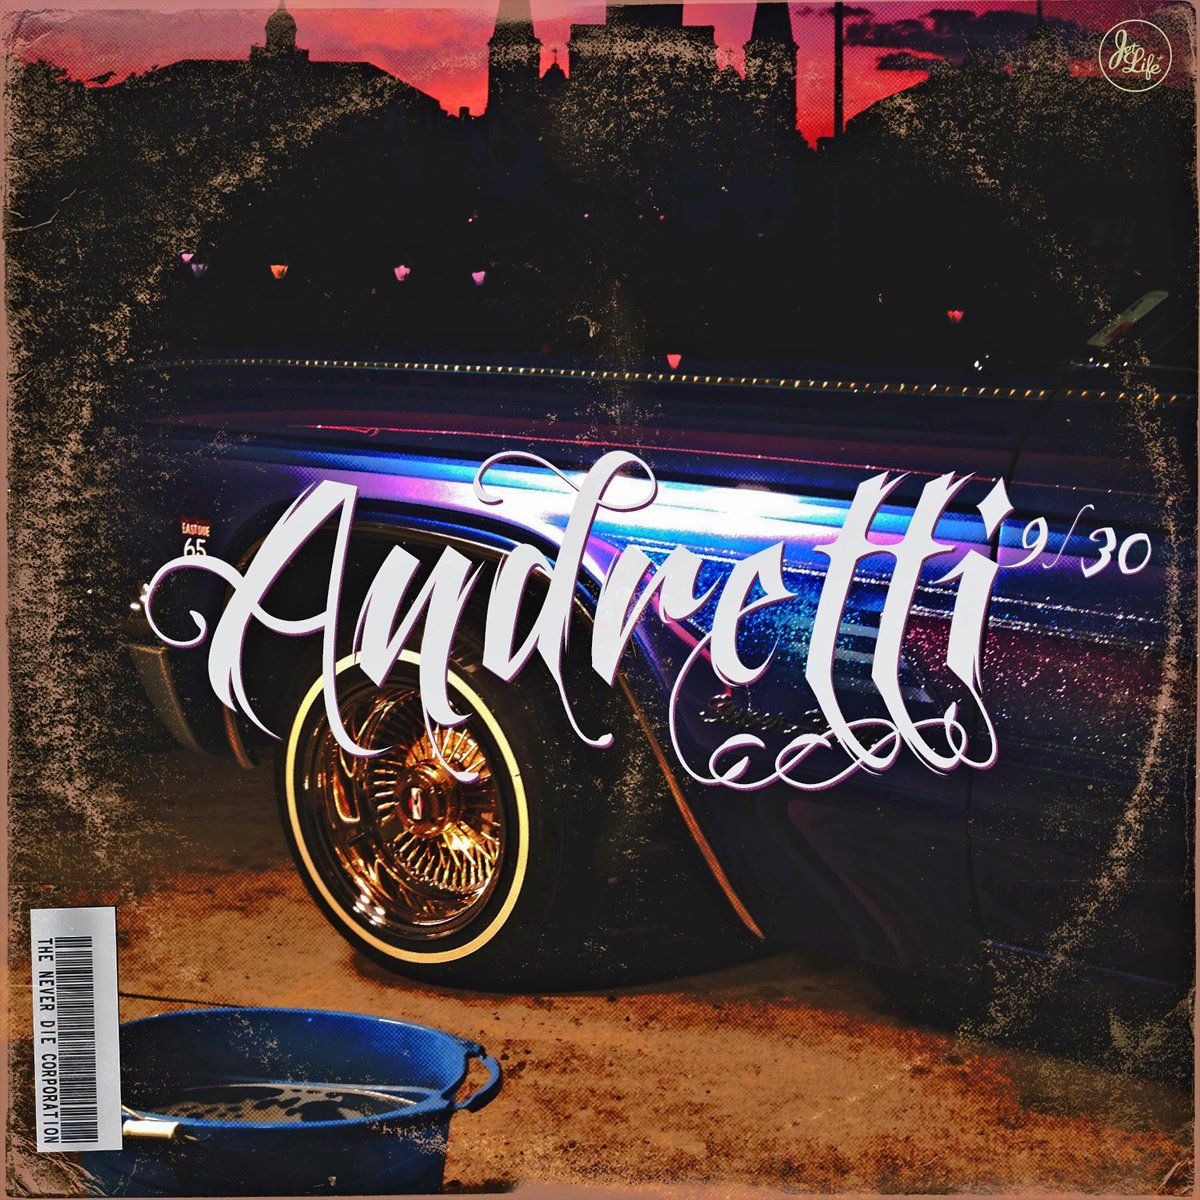 DROPPING TONIGHT @ 9:30PM!!!!!  New mixtape from @Currensy_SPitta  - - #930Tape powered exclusively by @DatPiff https://t.co/WlG3k1lorK